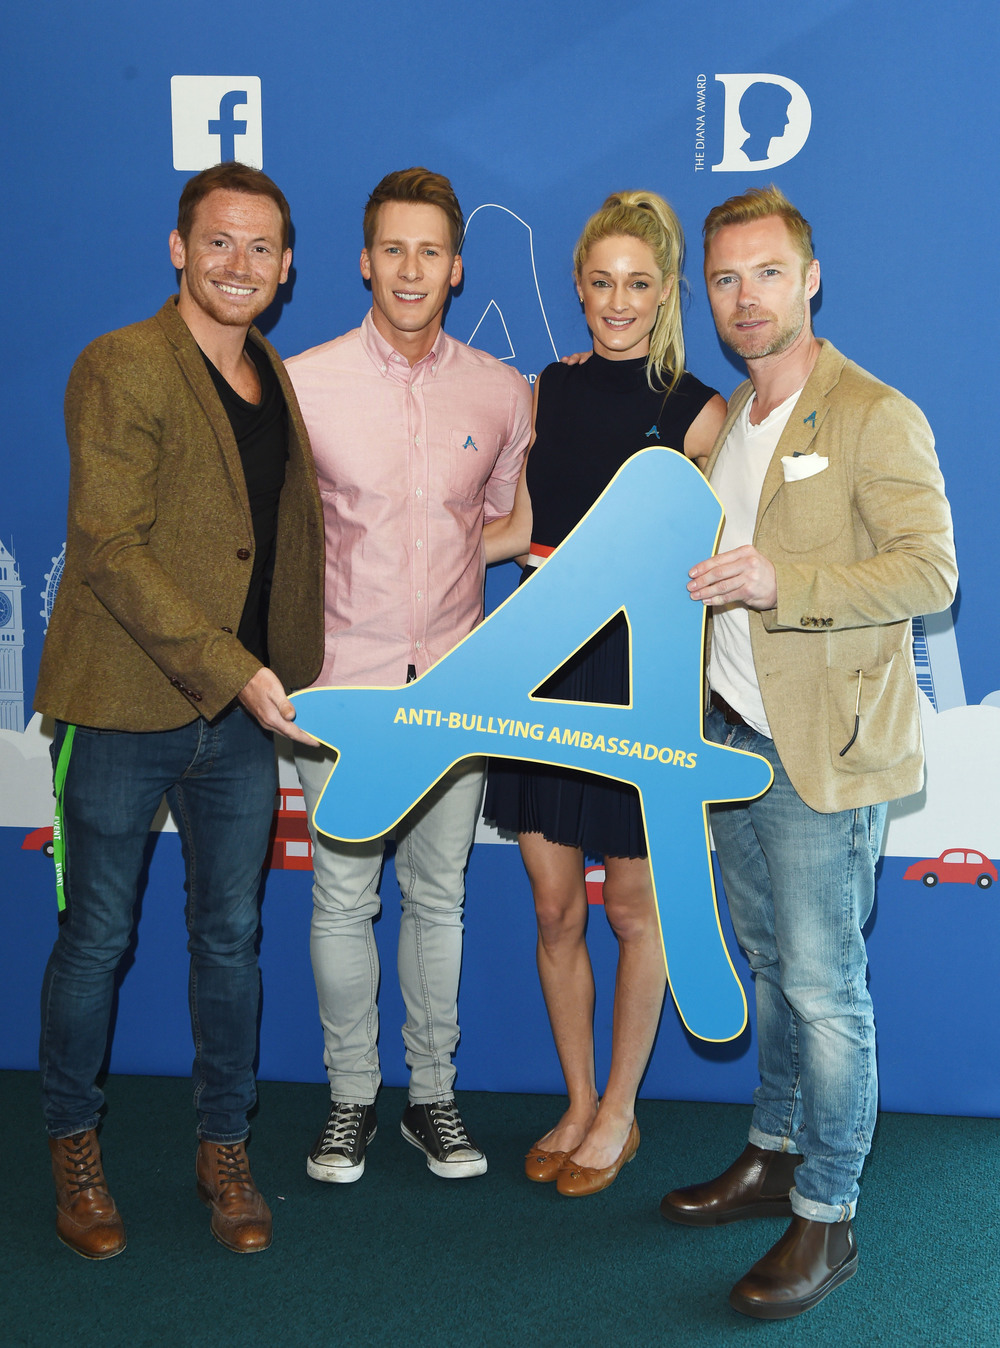 9th July 2015Celebrities and young people take a stand against bullying at star-studded Diana Award Anti-Bullying showcase held at Facebook, LondonHere: Dustin Lance Black_Storm Uechtritz_Ronan Keating_Joe SwashCredit: Justin Goff/Goffphotos.com